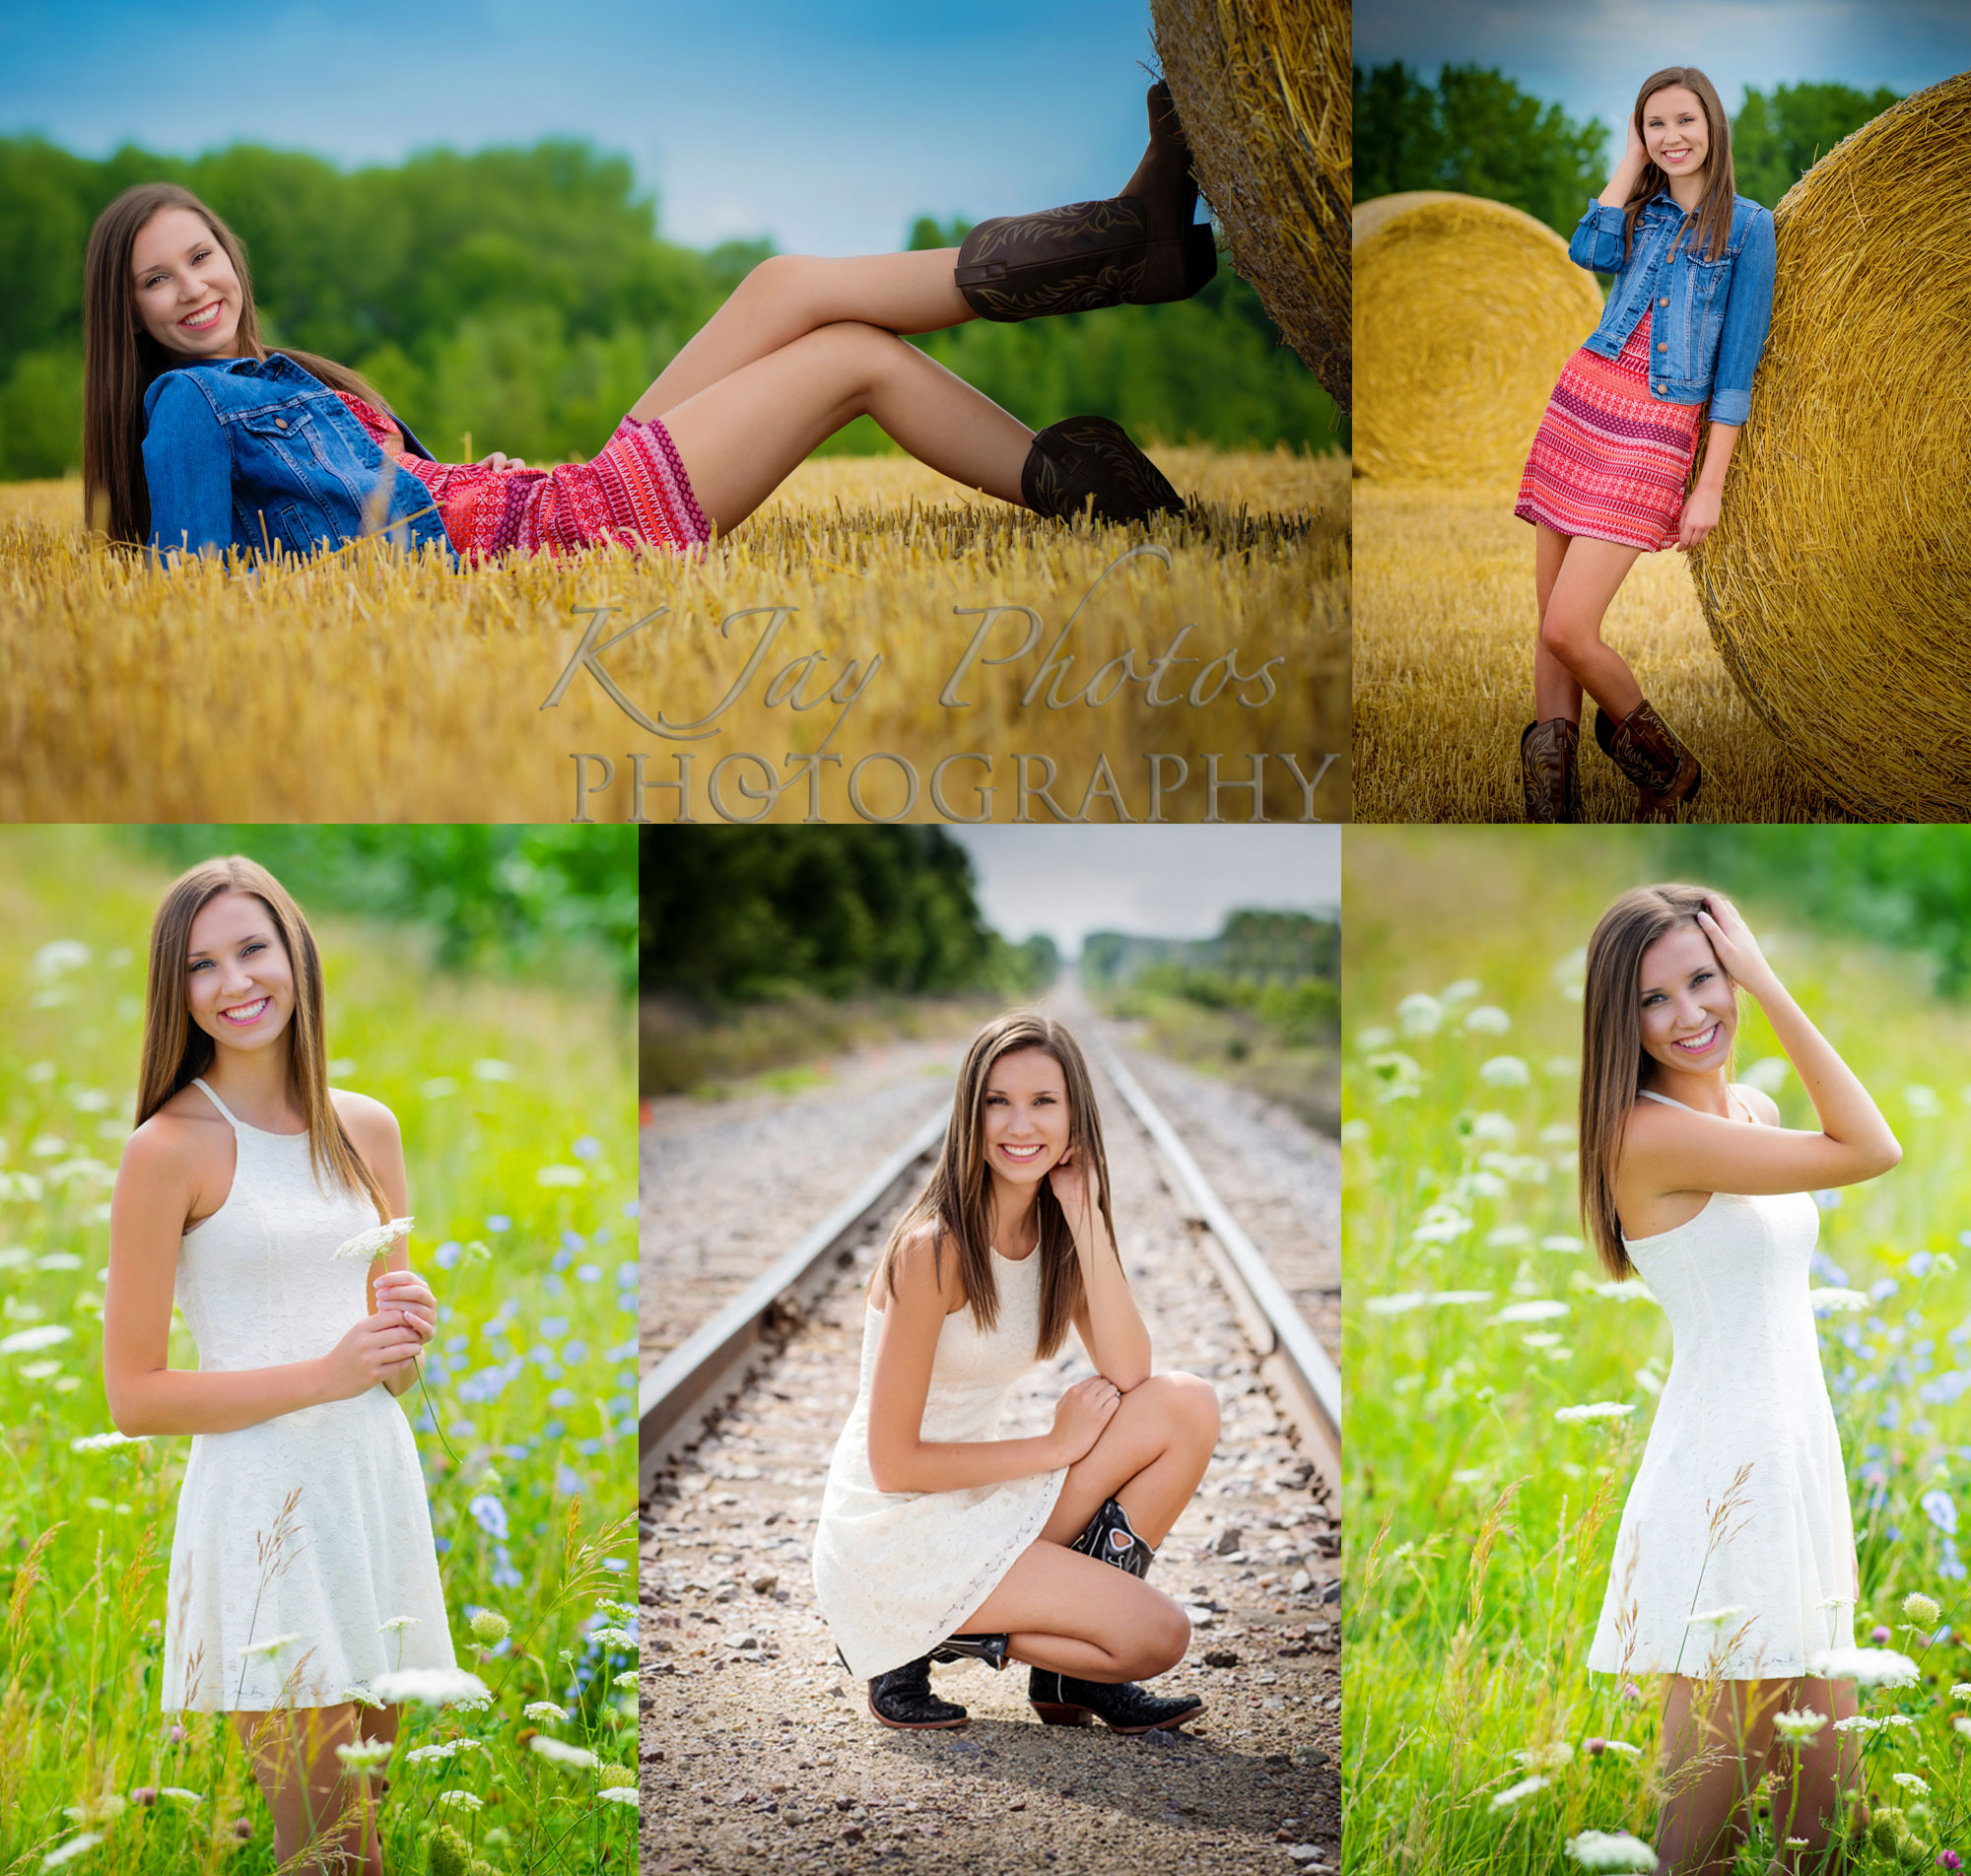 KJay Photographer Review. Jenna De Forest High School Senior